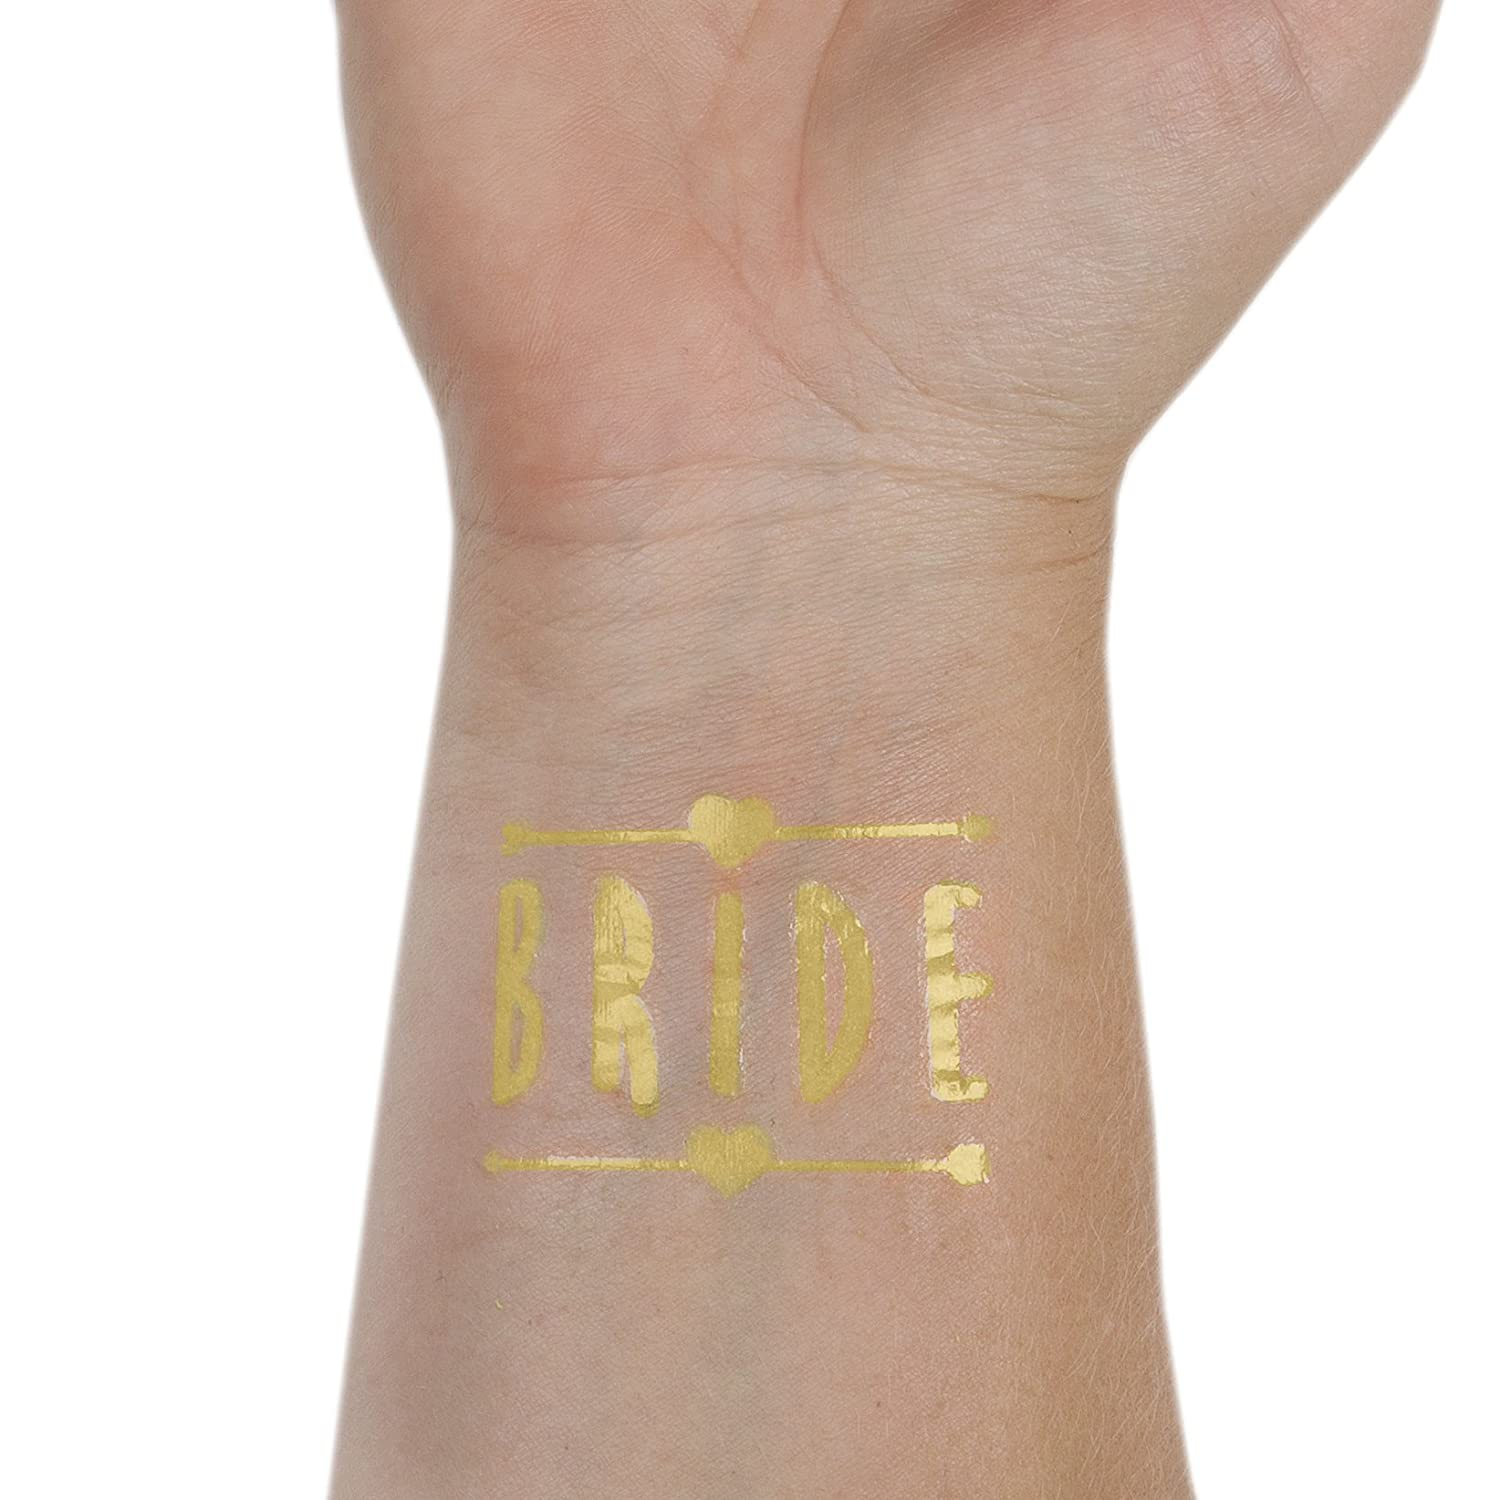 Bride Tribe 16 Tattoos Decorations /& Supplies Temporary Flash Tattoos 16 Glow in The Dark Tattoos Bachelorette Party Favors ASUSA Bachelorette Party Tattoos